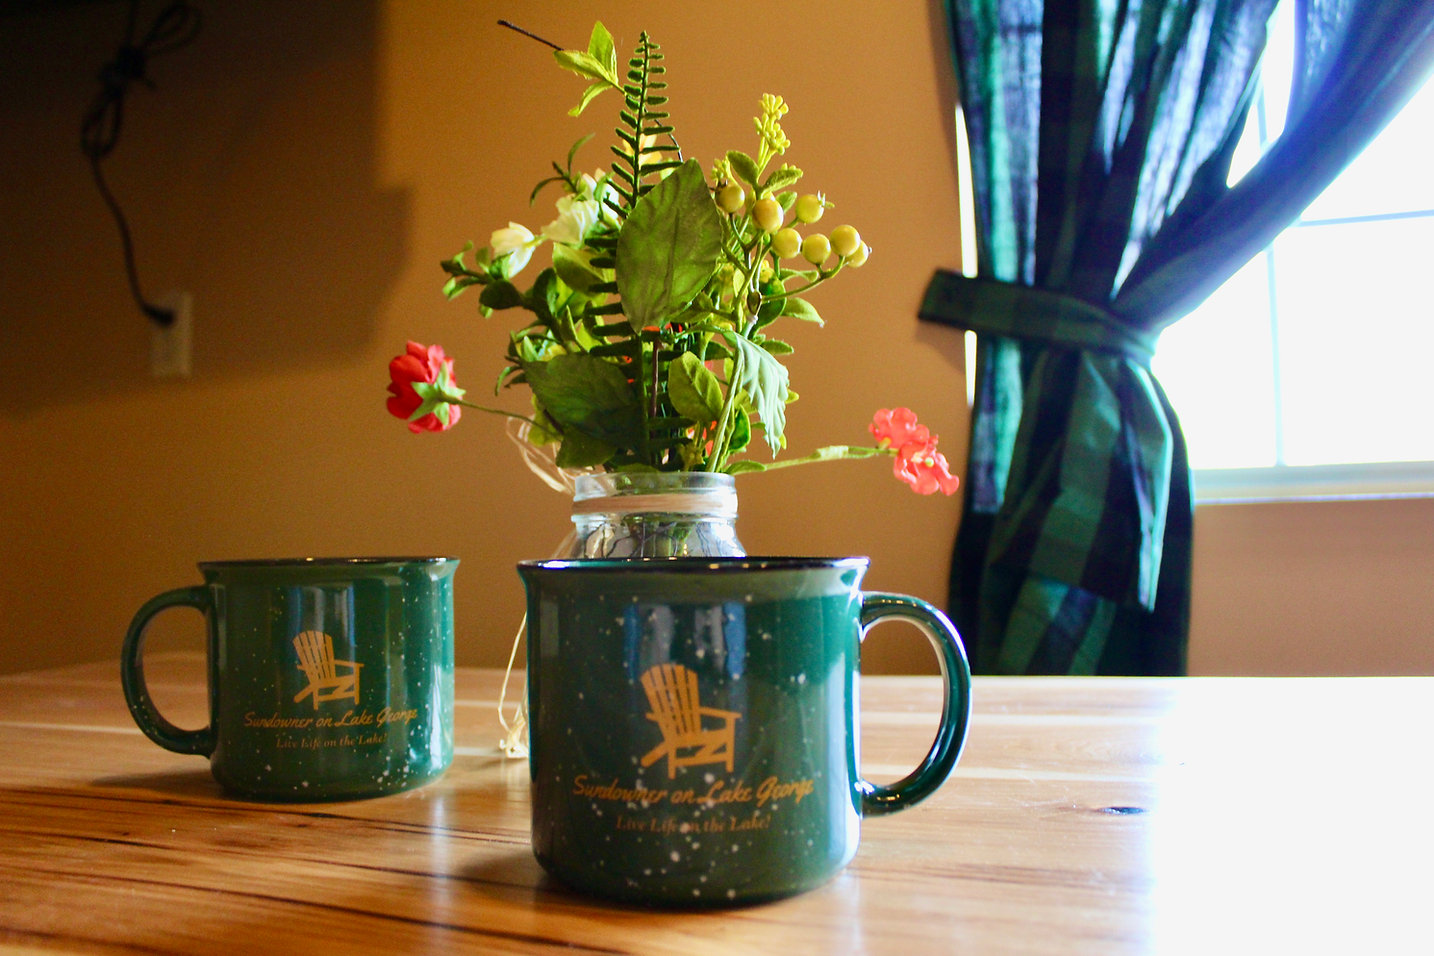 sundowner on lake george campfire coffee mugs with fresh flowers in the background